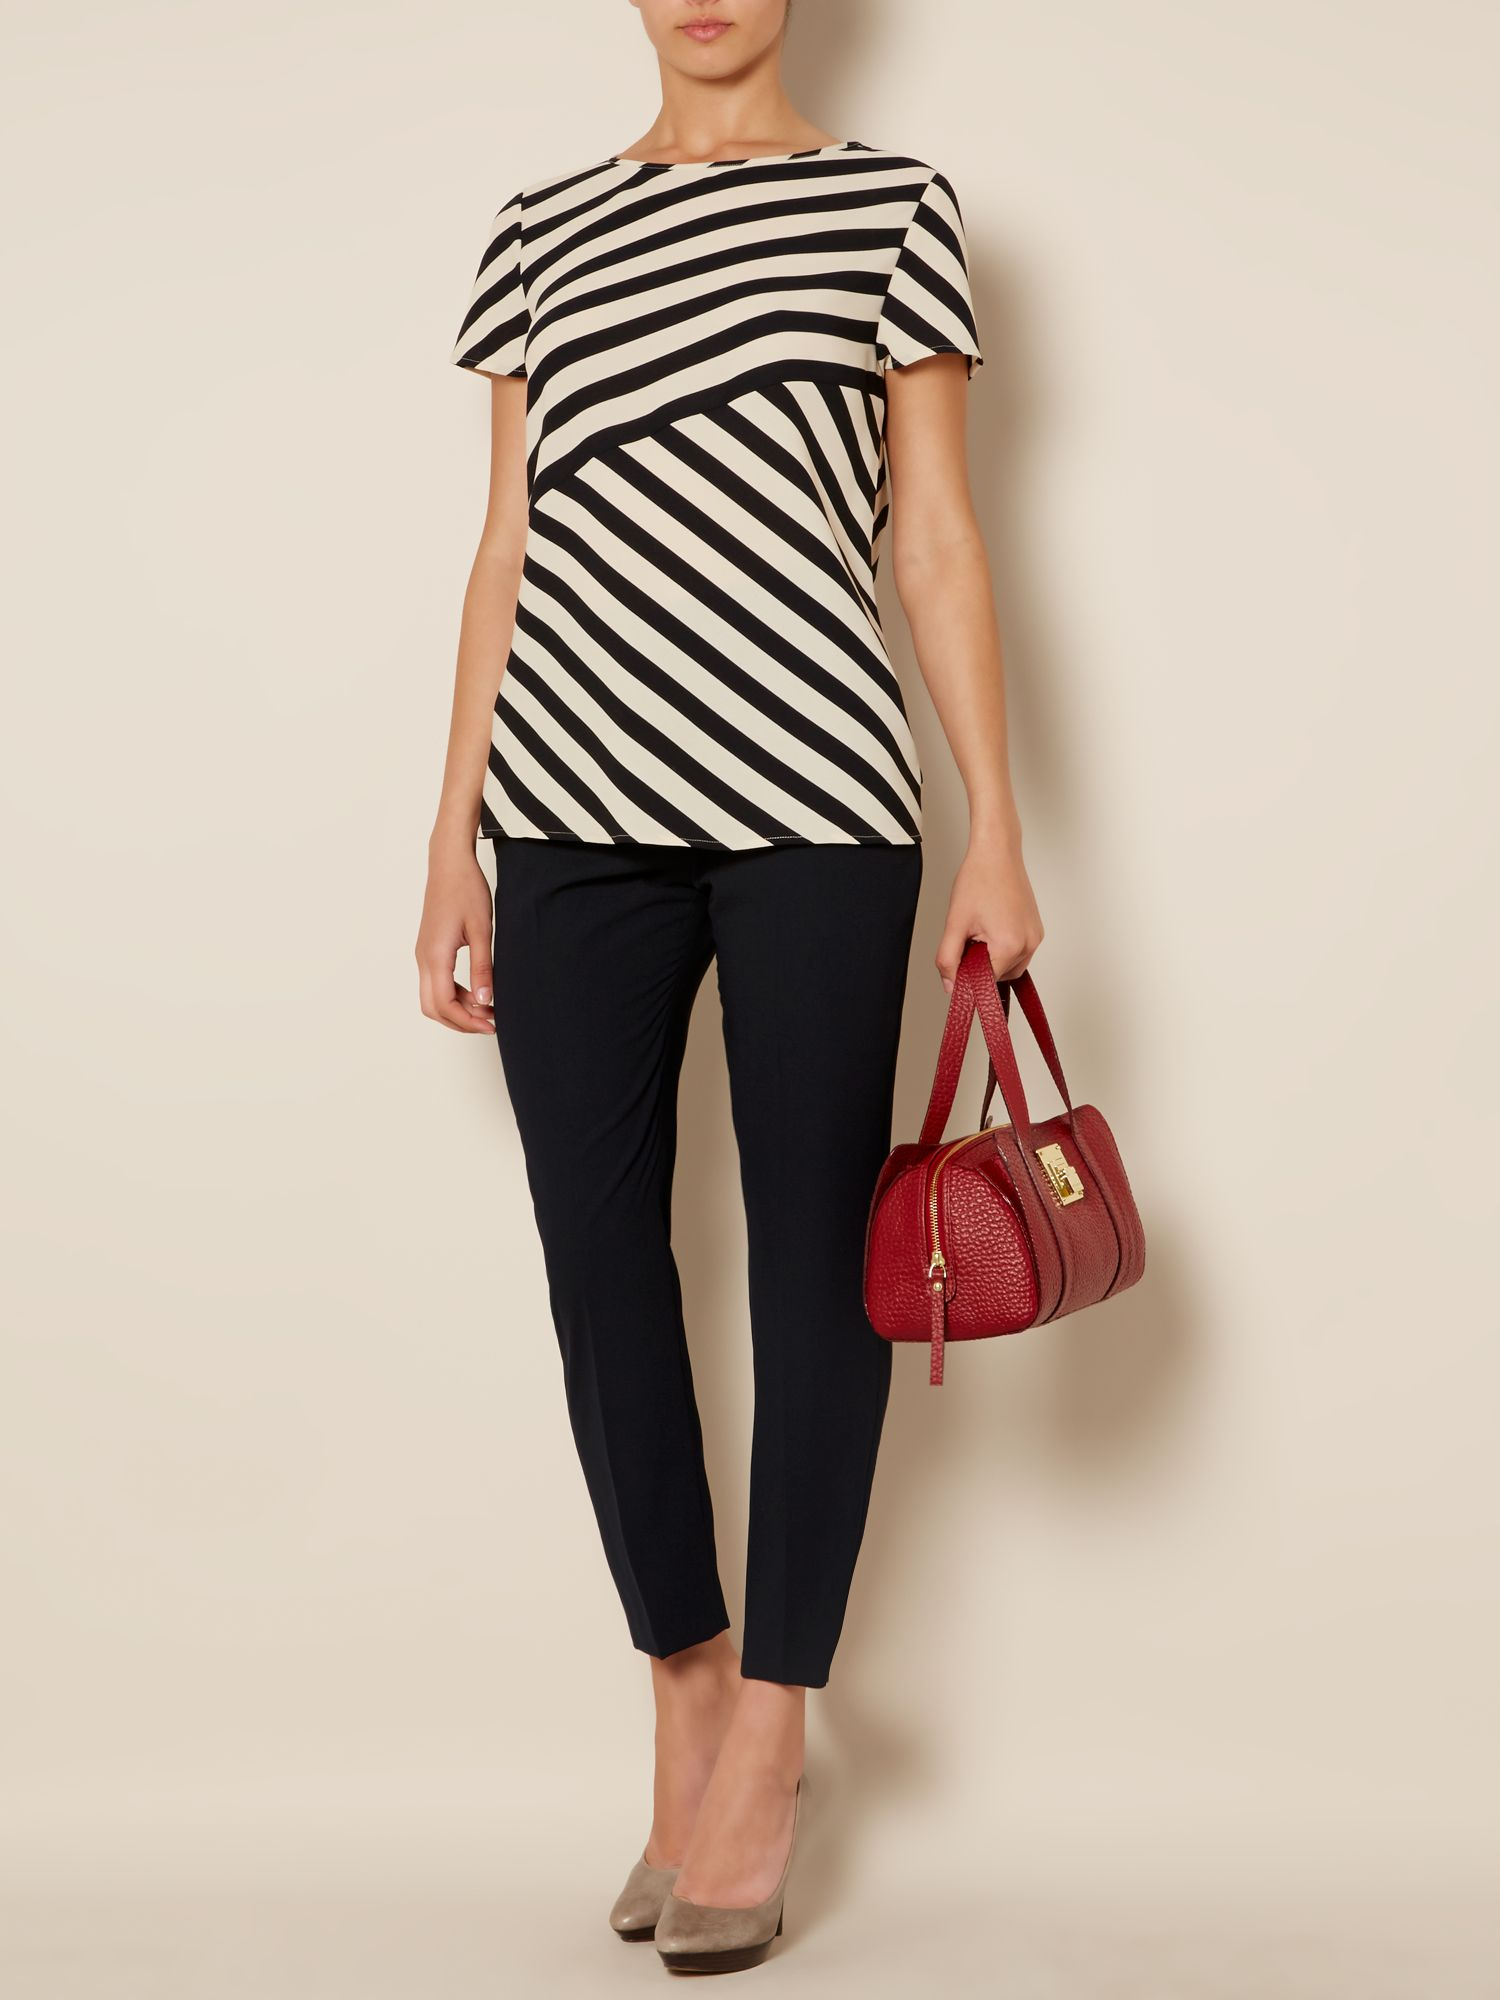 Wide cutabout t cut top